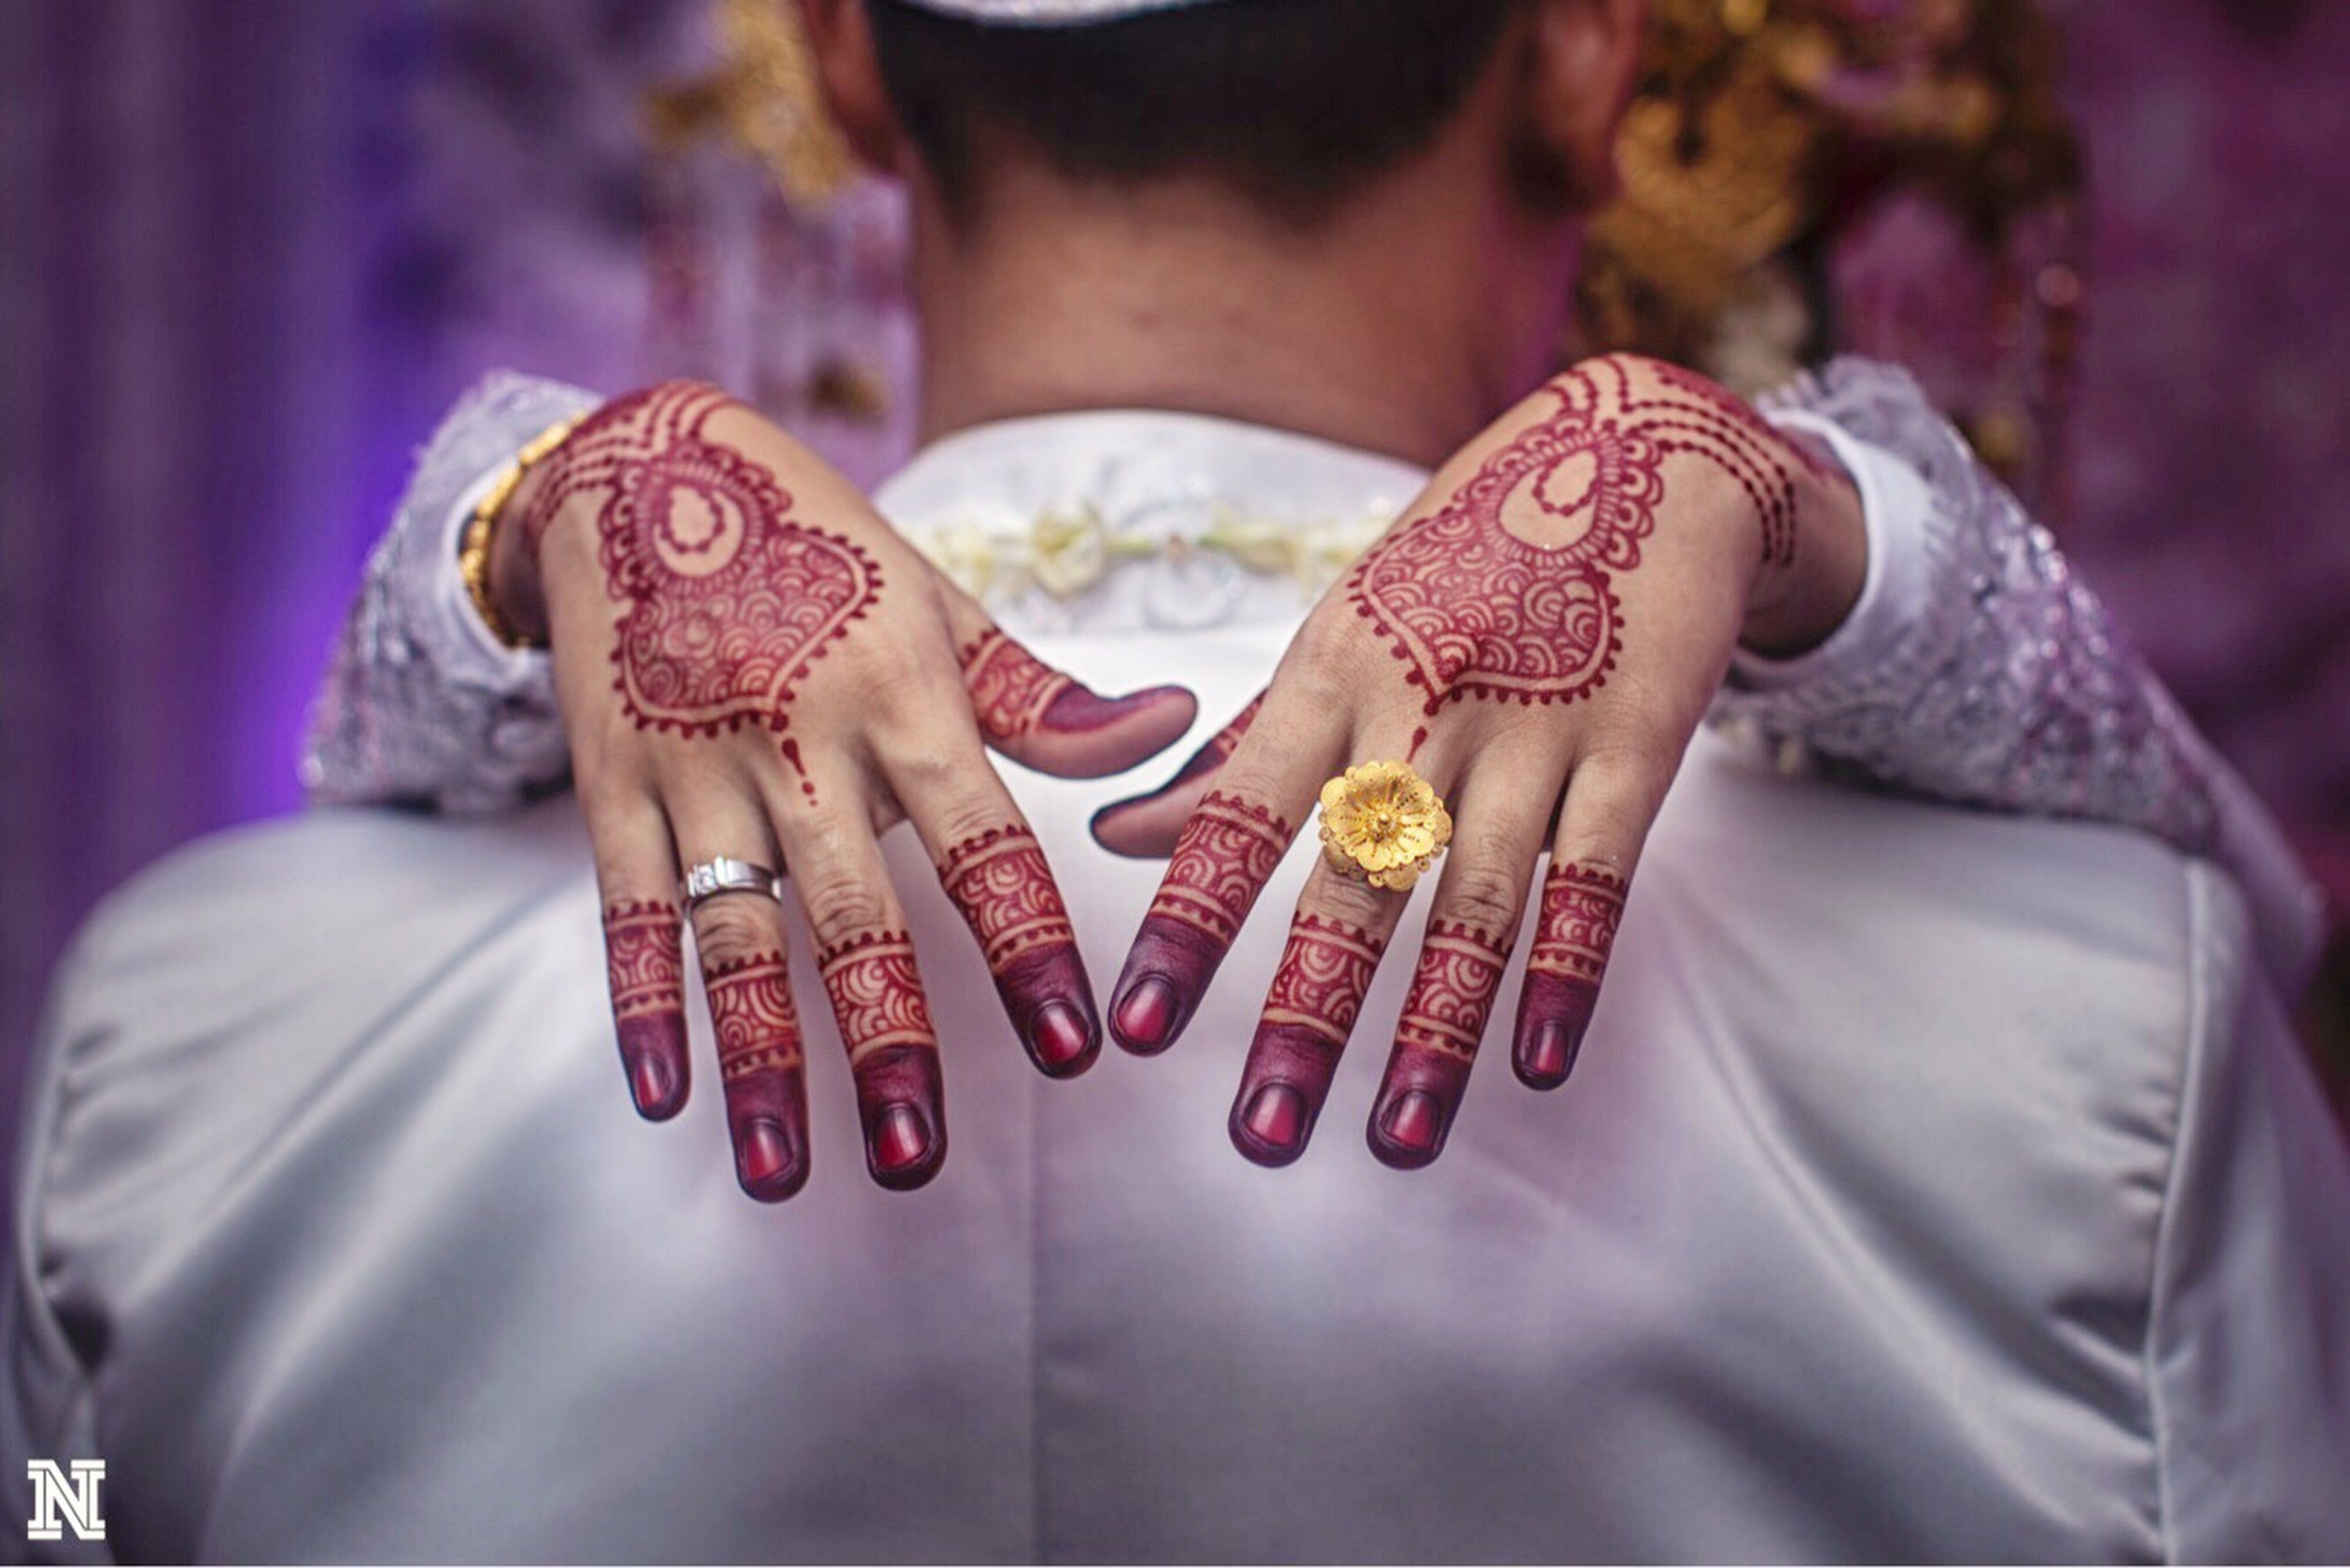 cultures, midsection, adults only, human hand, lifestyles, real people, adult, tradition, people, indoors, jewelry, one person, men, women, wedding ceremony, bangle, human body part, life events, wedding, bride, sari, close-up, wedding dress, young adult, day